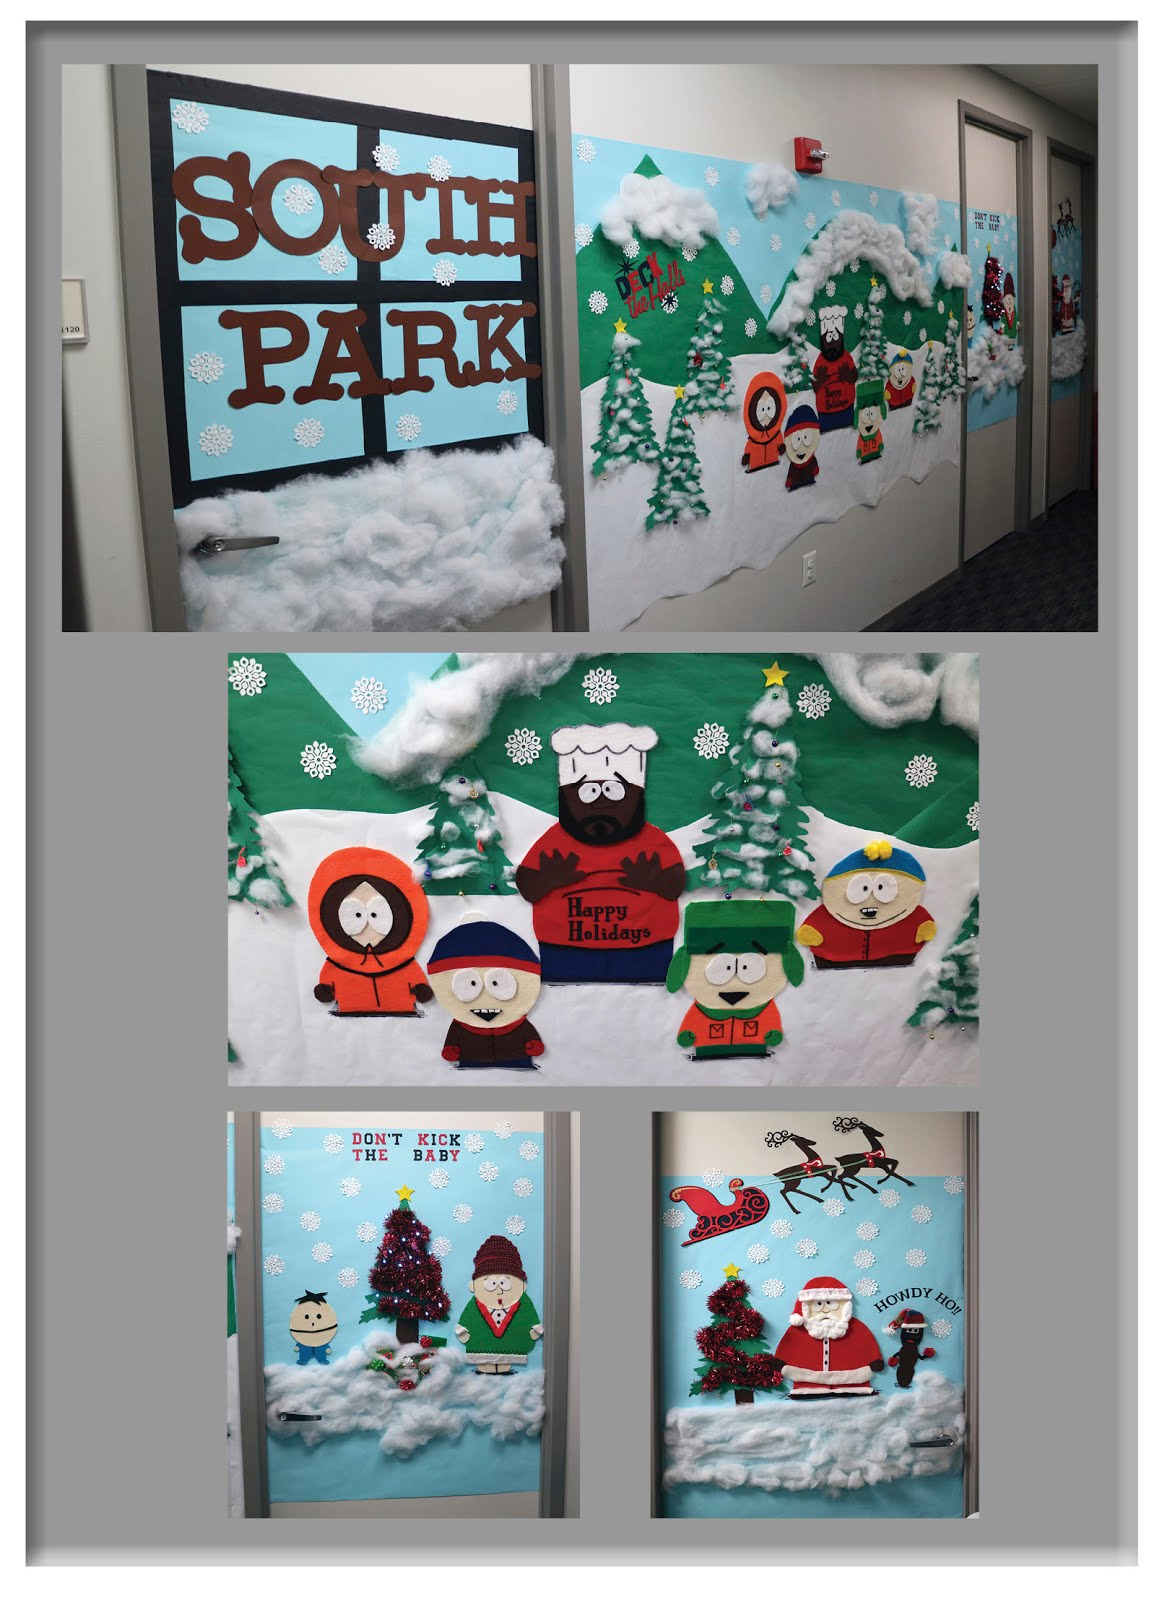 South Park Christmas.Lost In Luray South Park Christmas Door